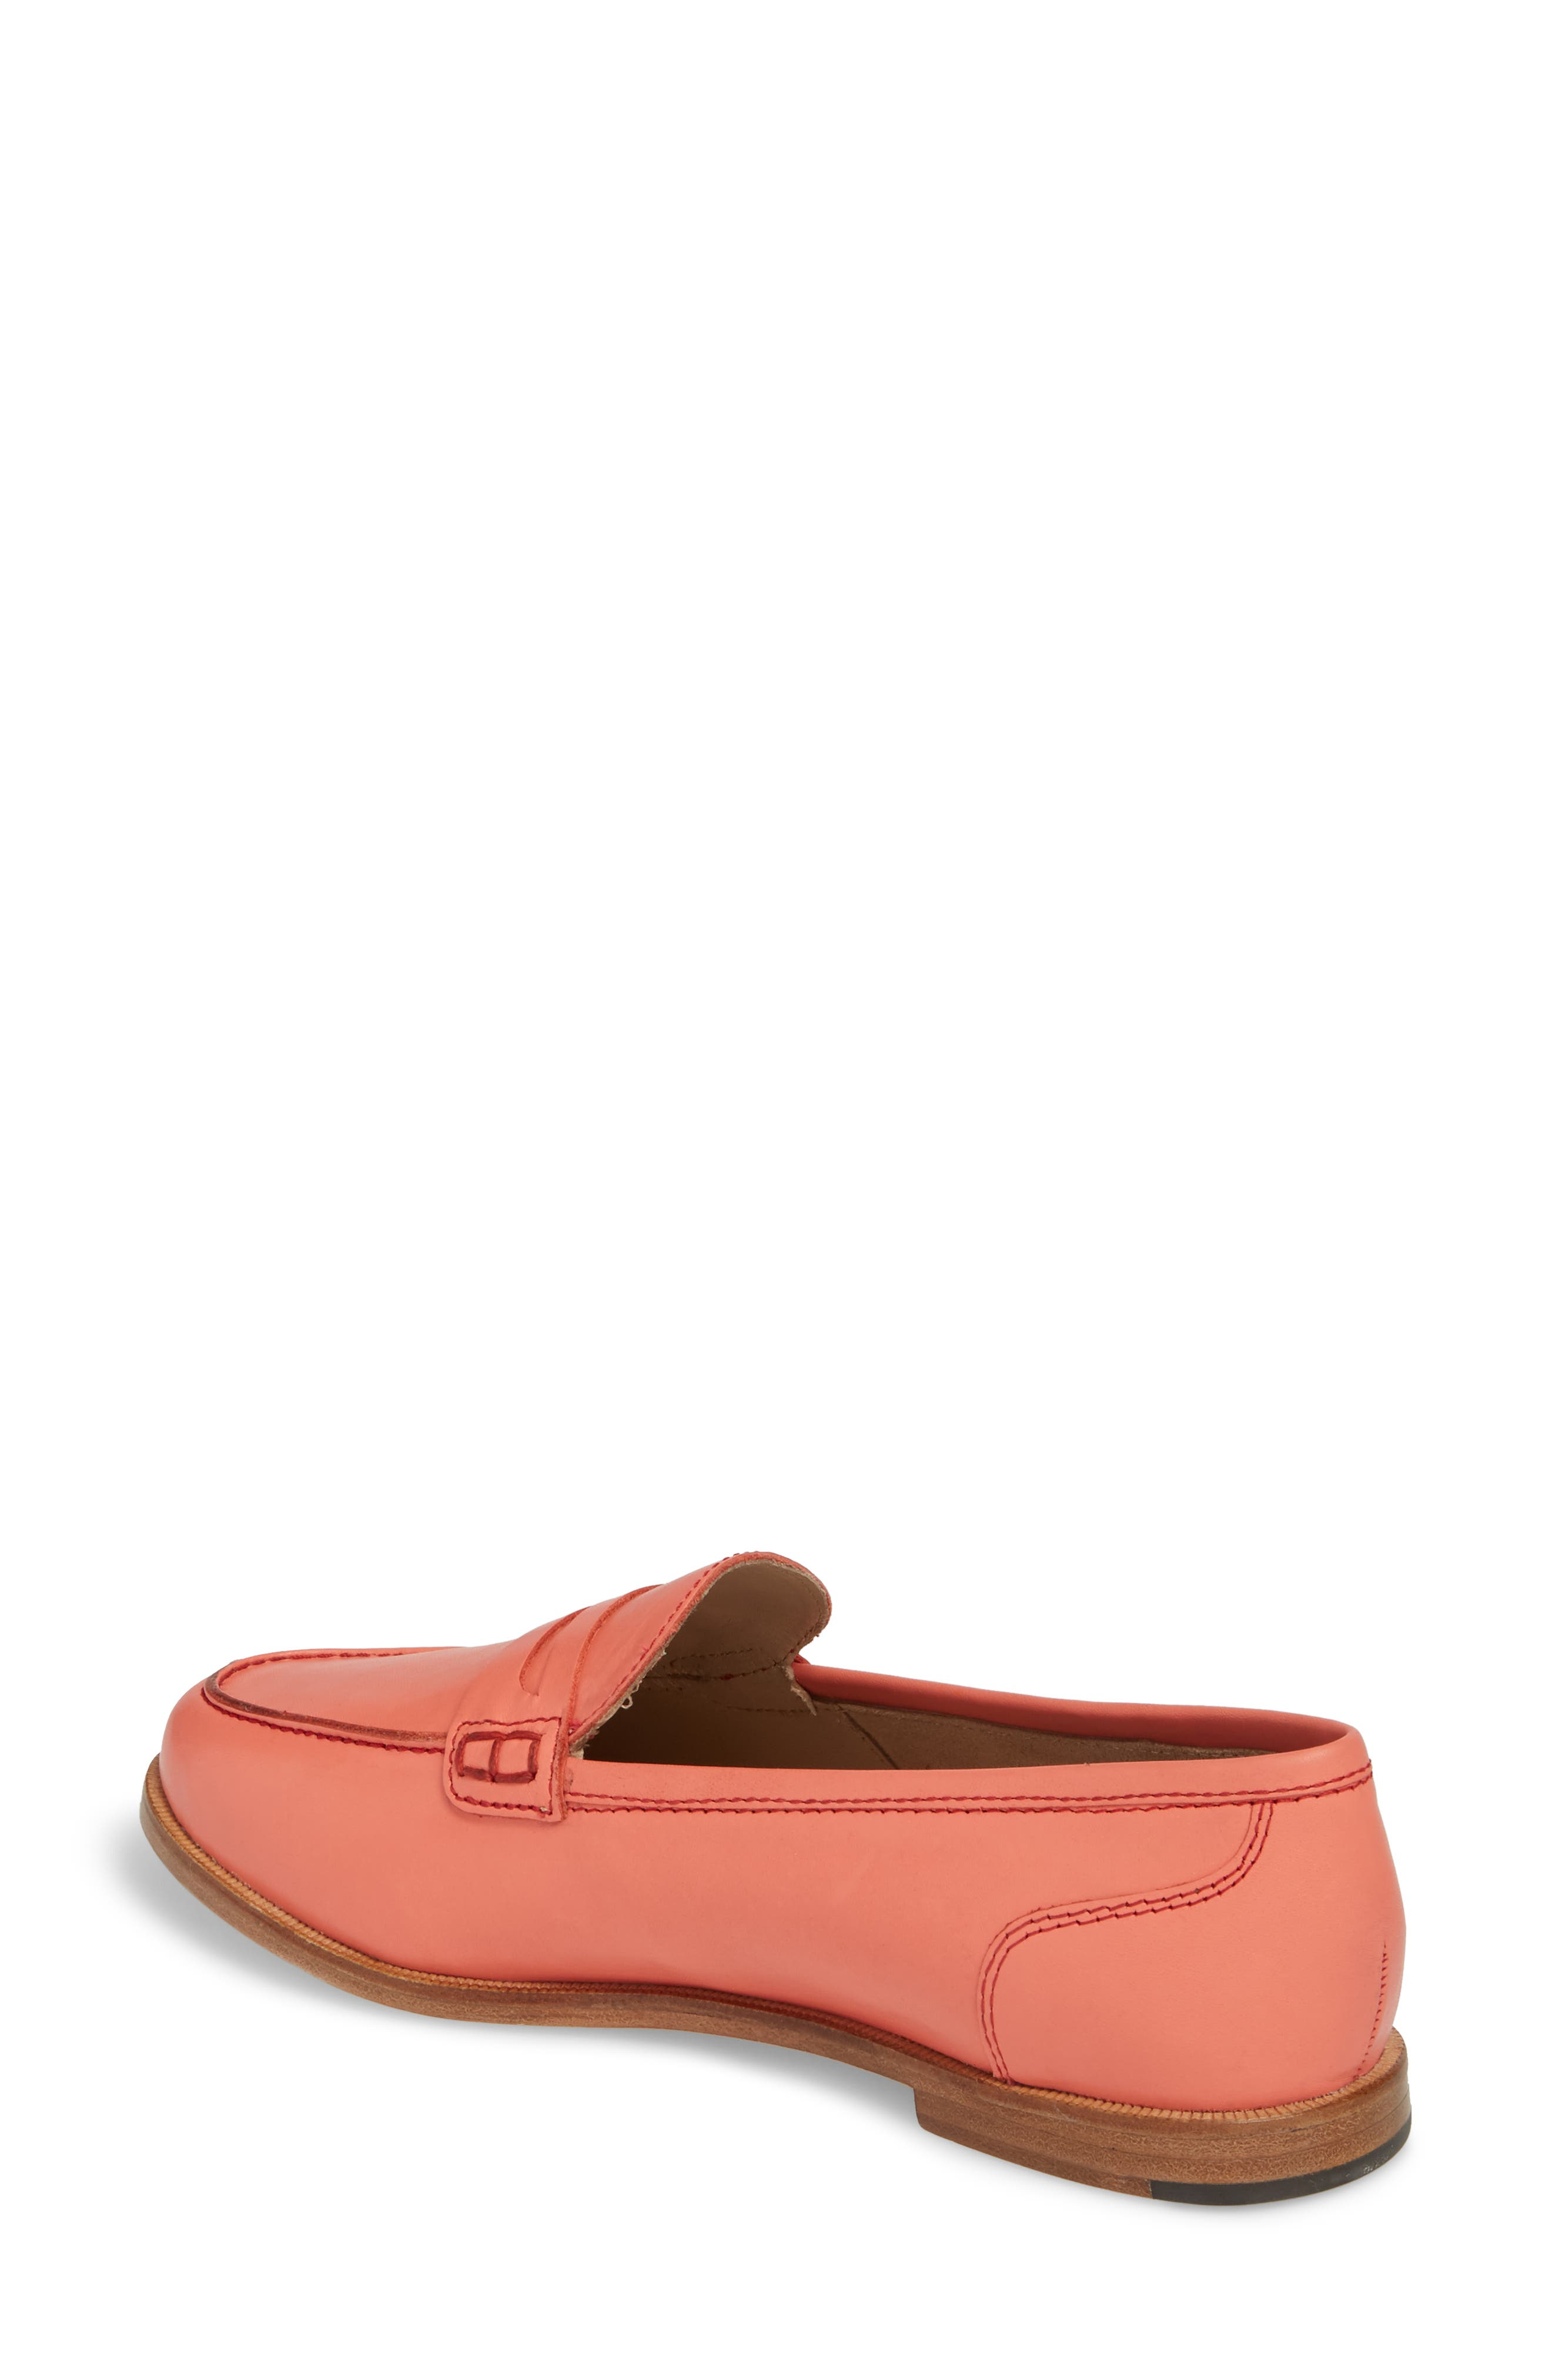 Ryan Penny Loafer,                             Alternate thumbnail 2, color,                             RUST LEATHER